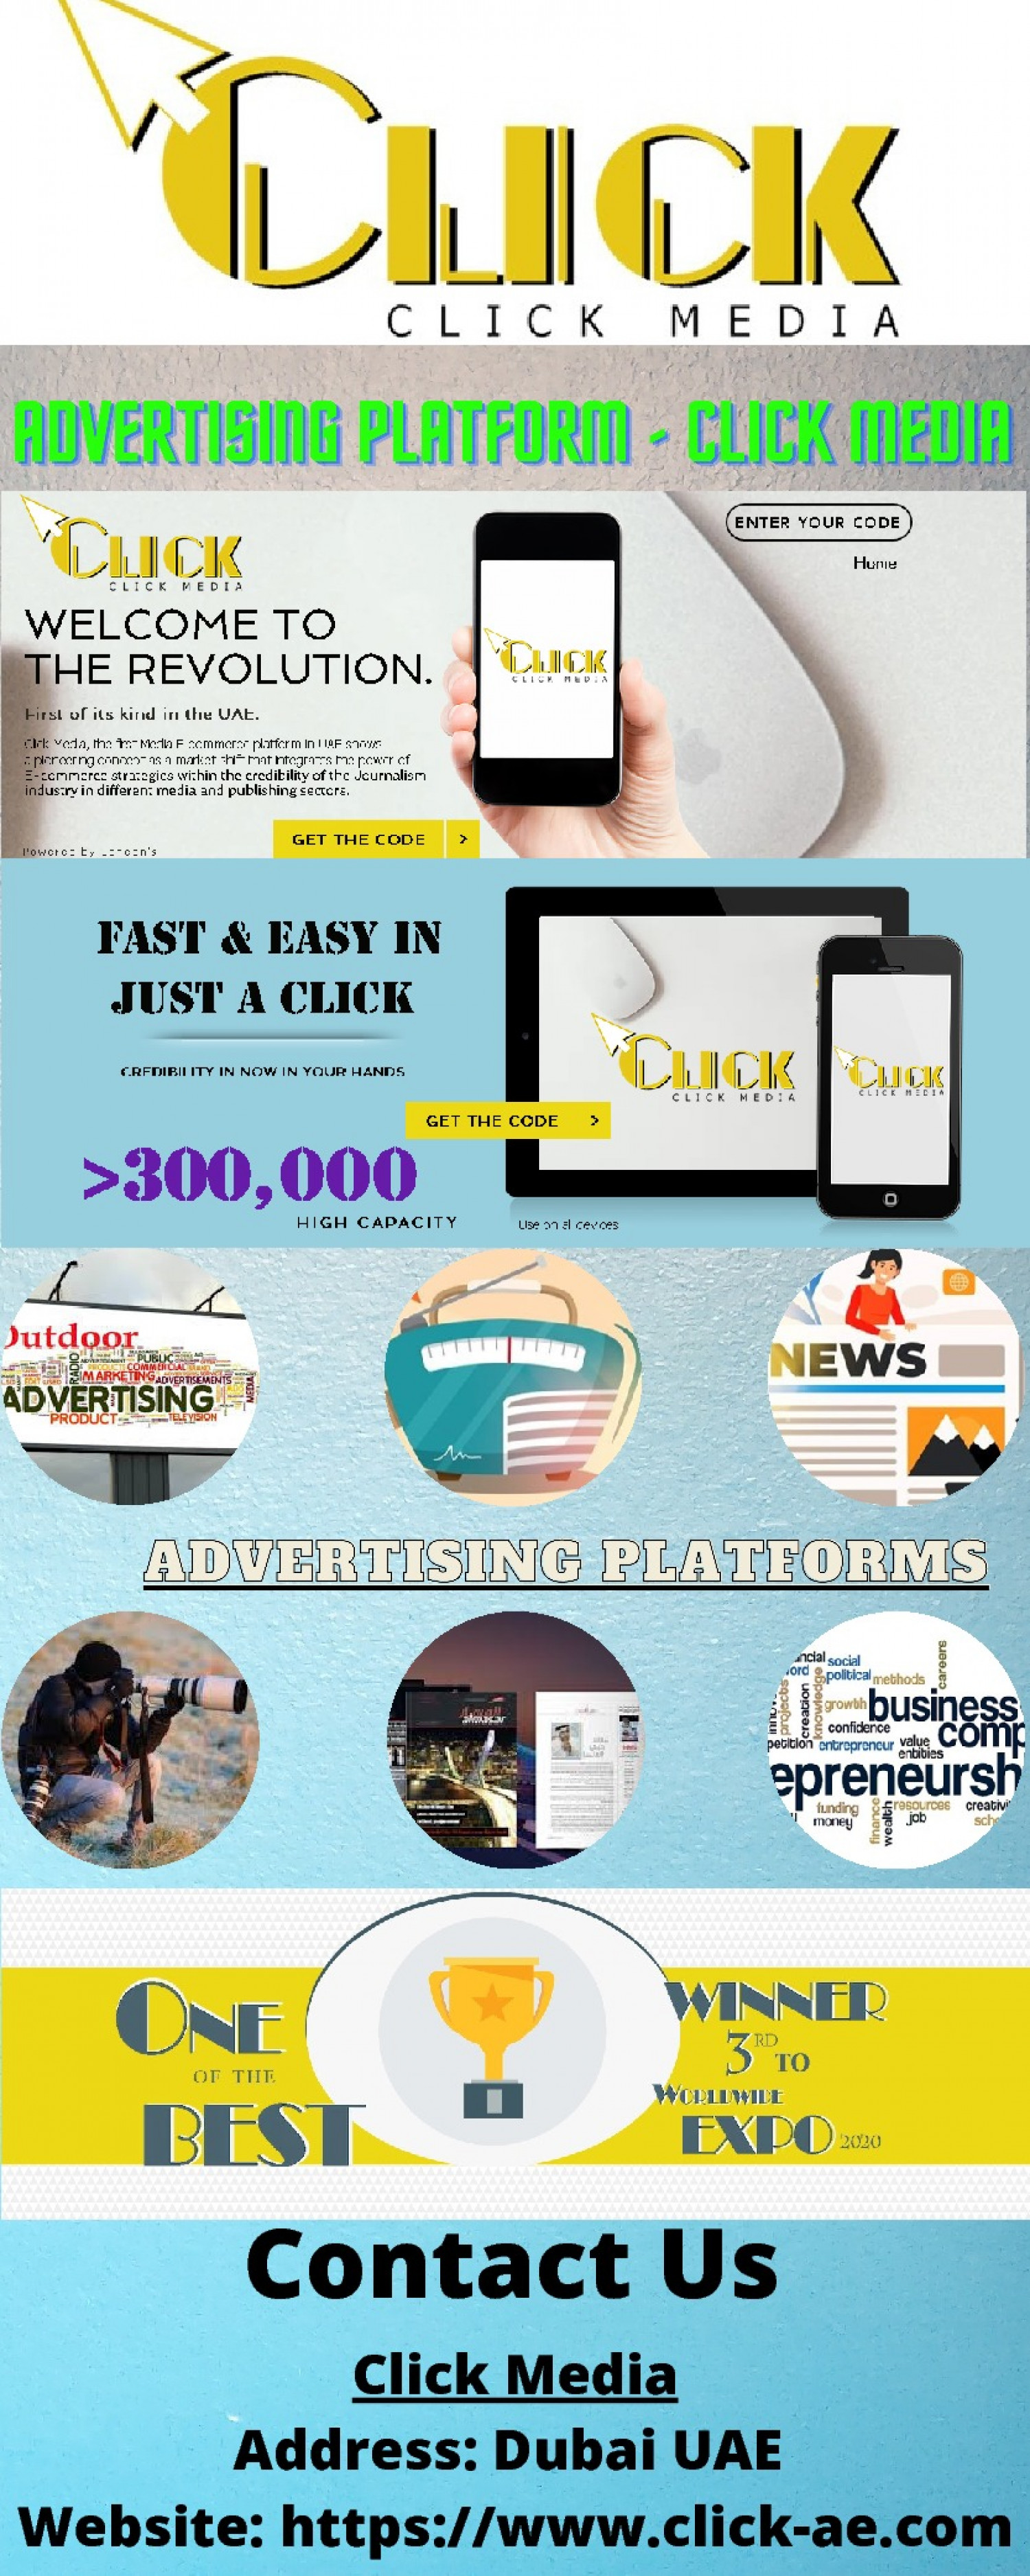 Contact for Advertising Platform - Click Media Infographic